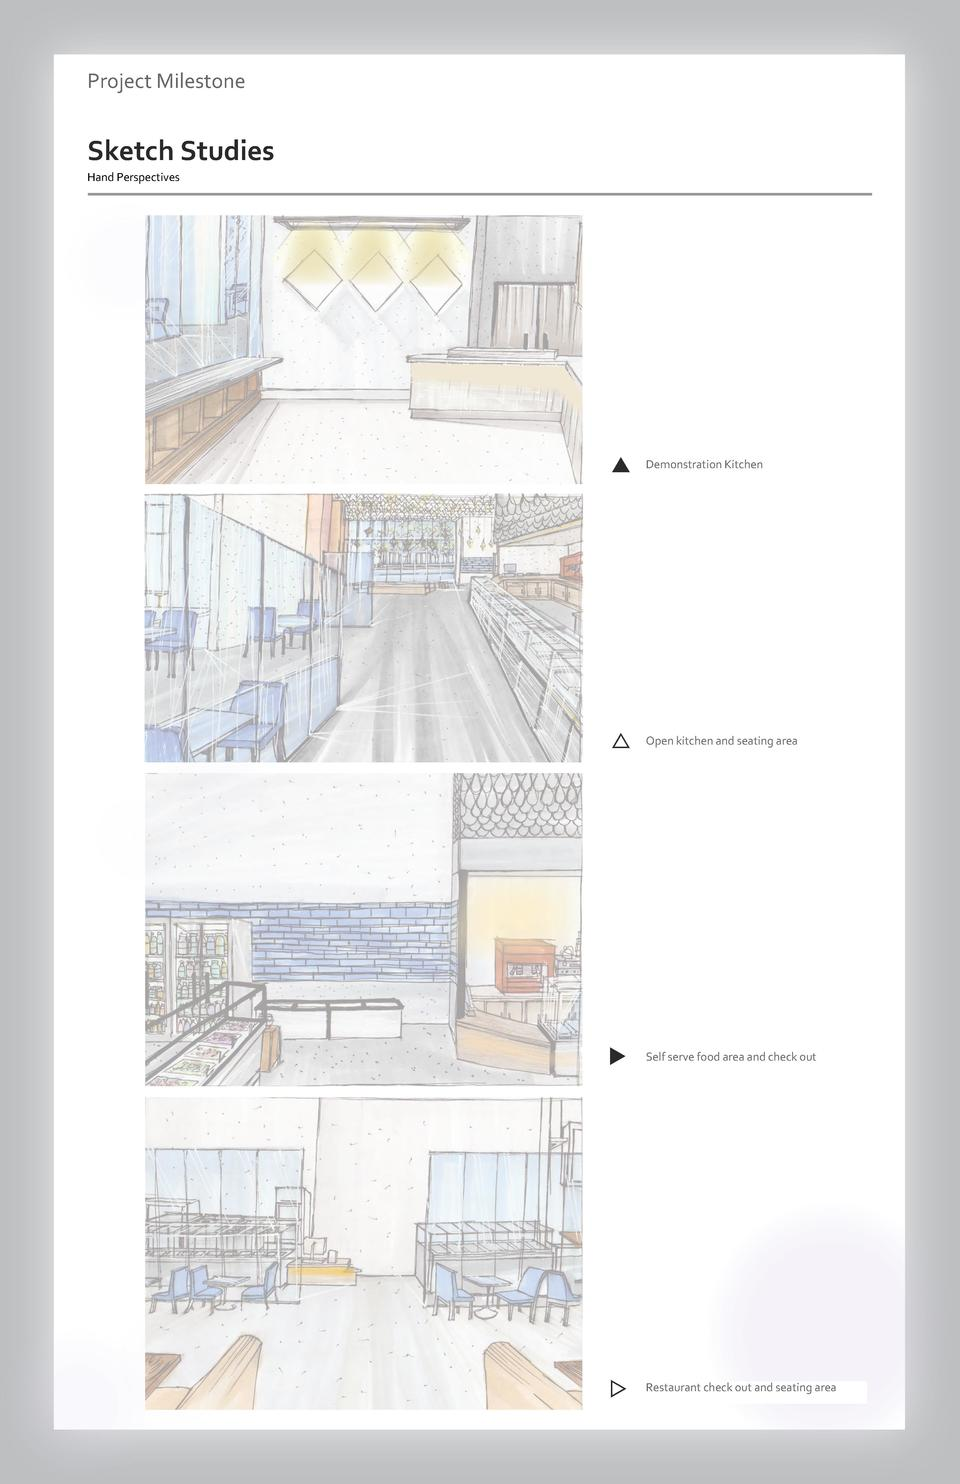 Case study Project Milestone - Aesthetics  Commercial Sketch Studies Space Wayfinding Westfield Hand Perspectives Valley F...